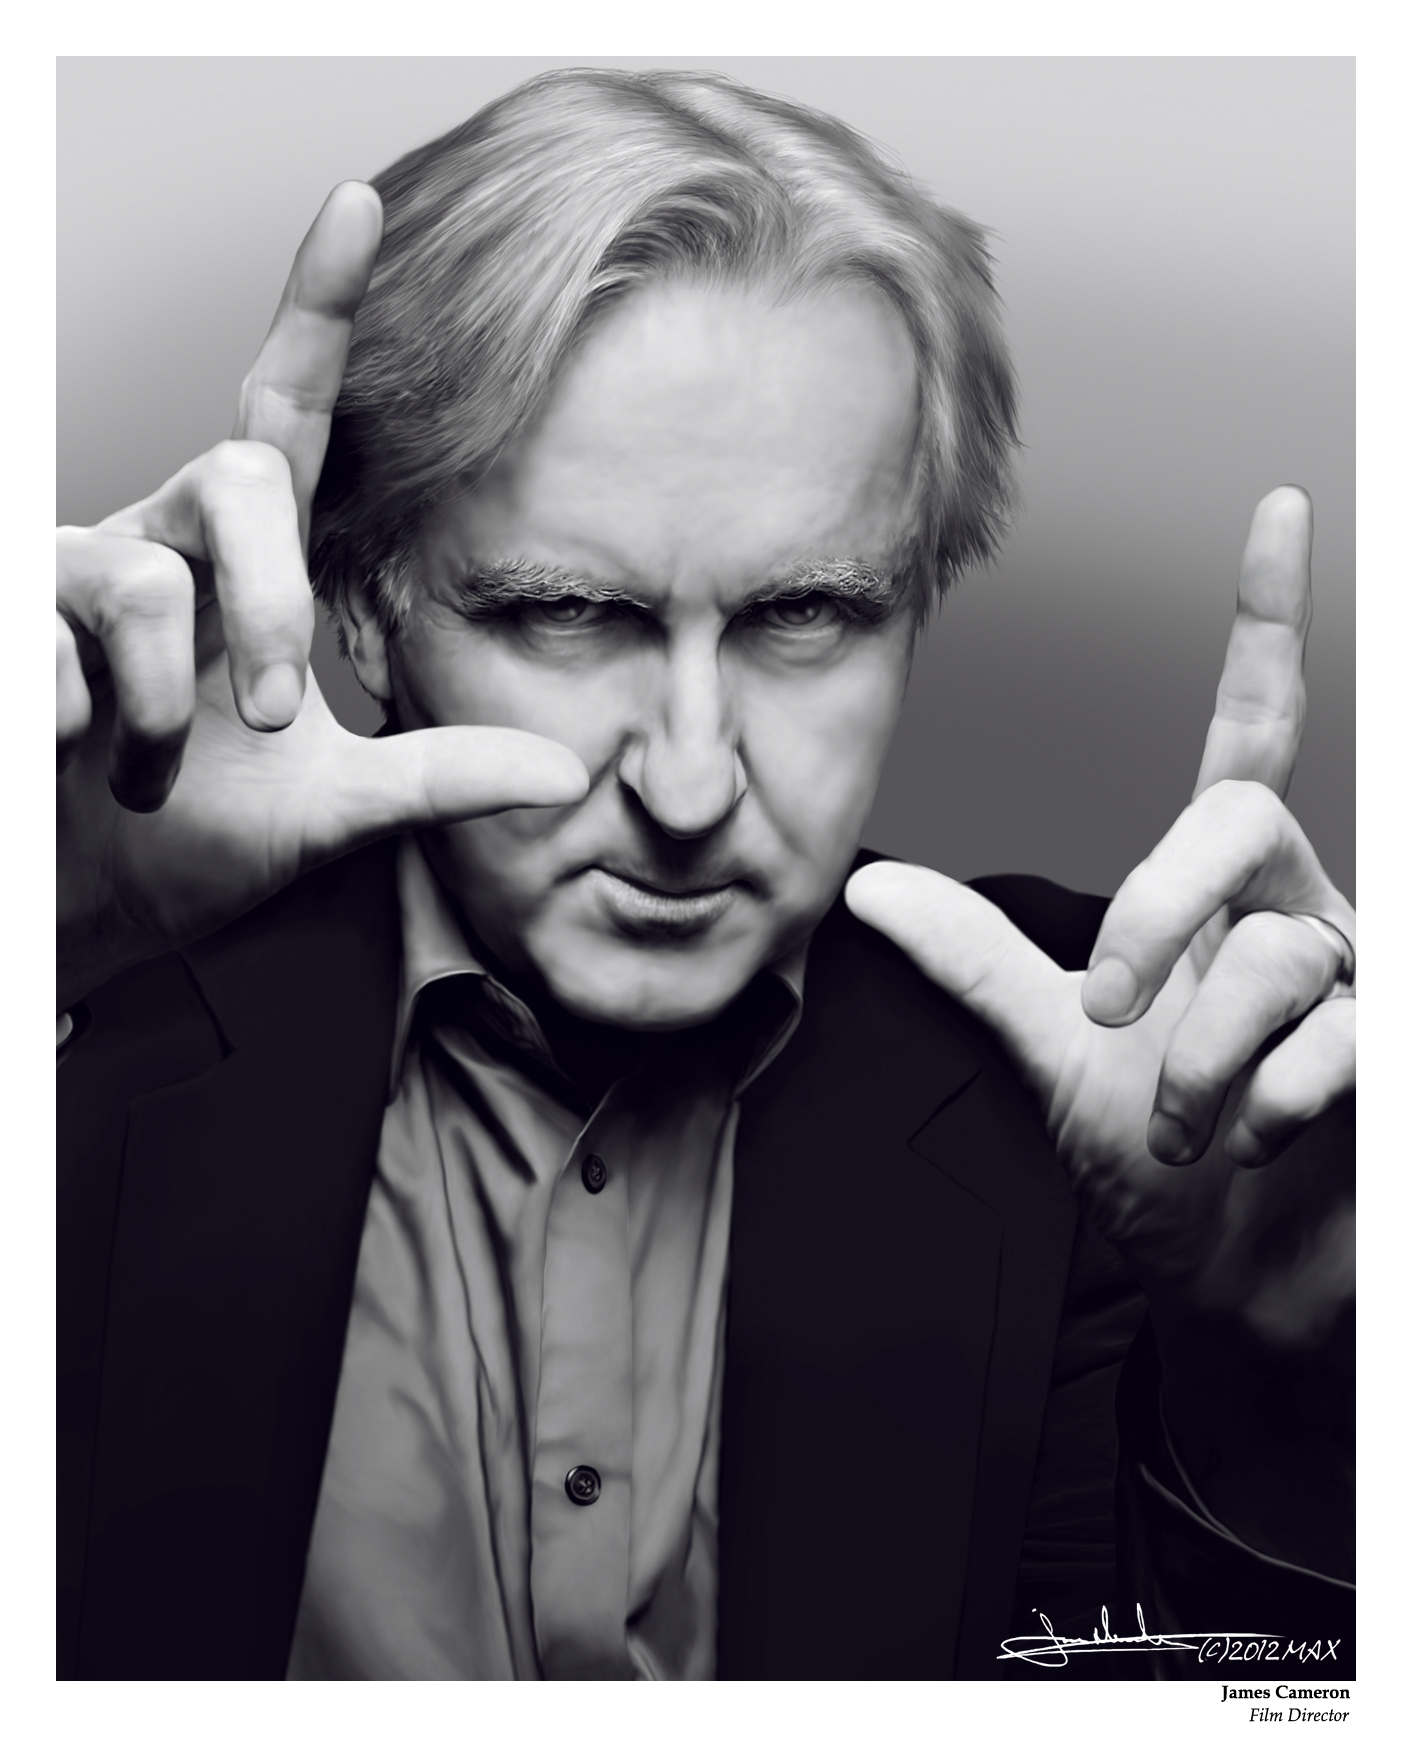 James Cameron: James Cameron By MaxHitman On DeviantArt